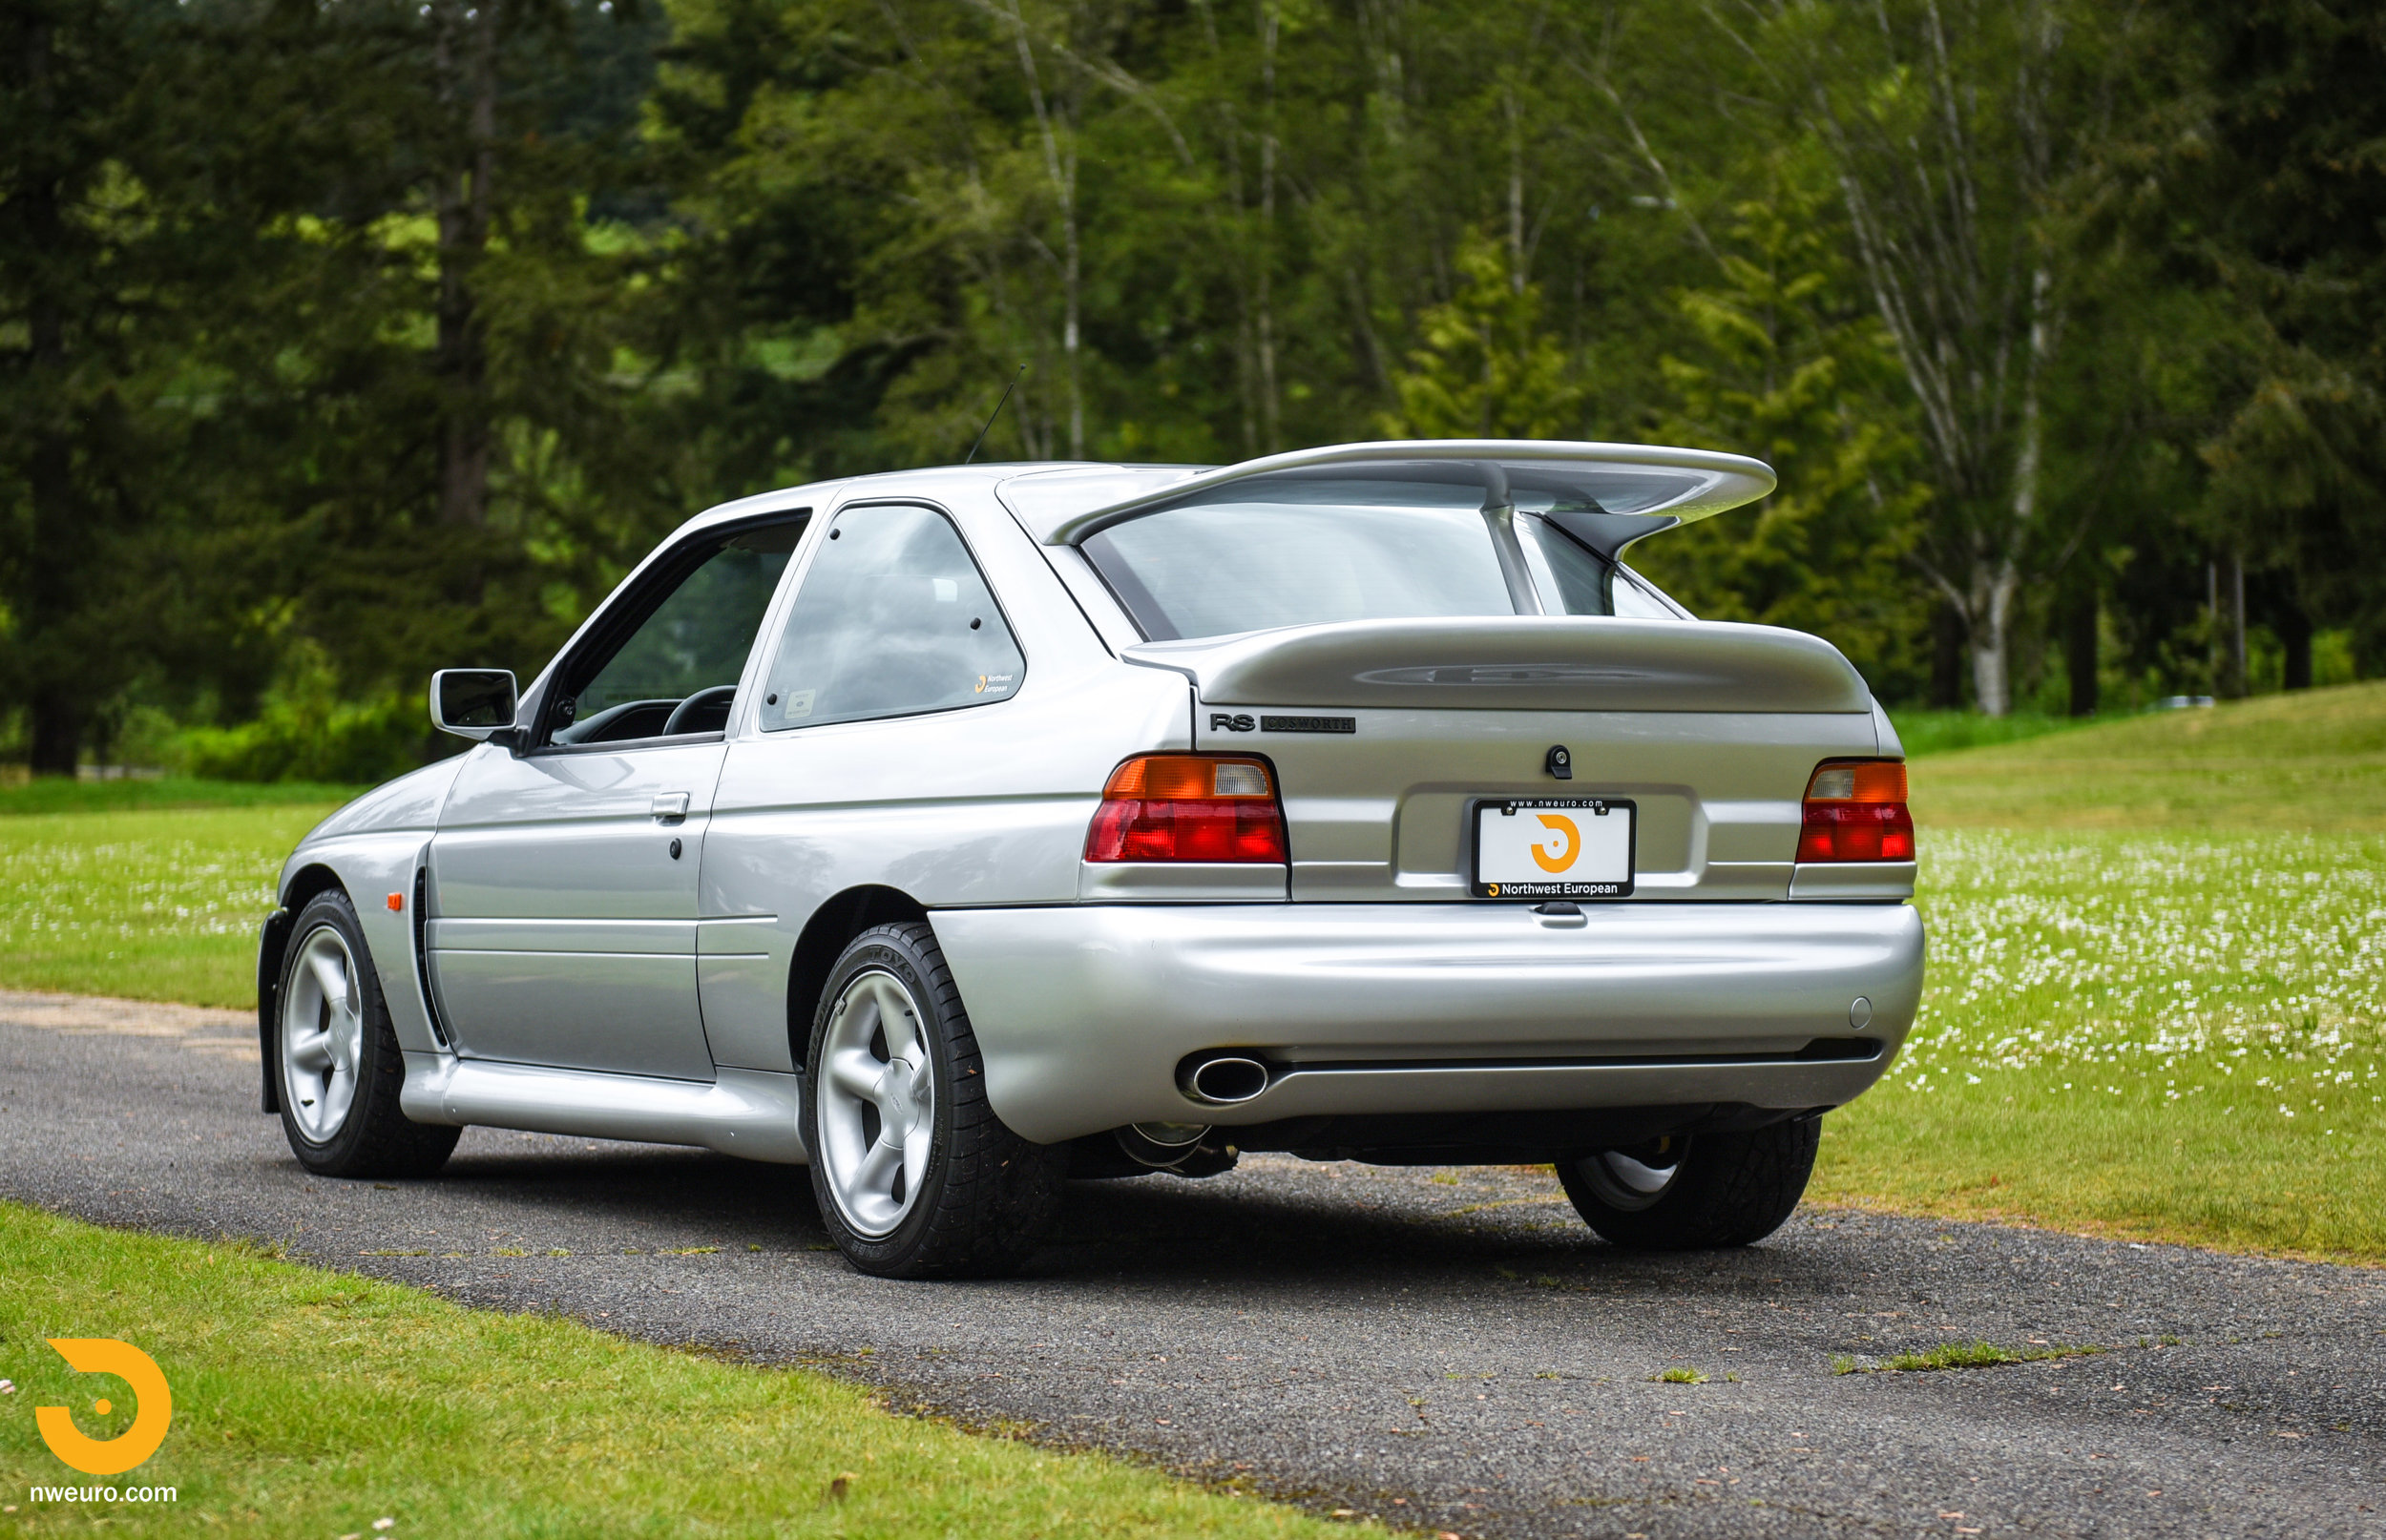 1995 Ford Escort Cosworth RS Silver-19.jpg